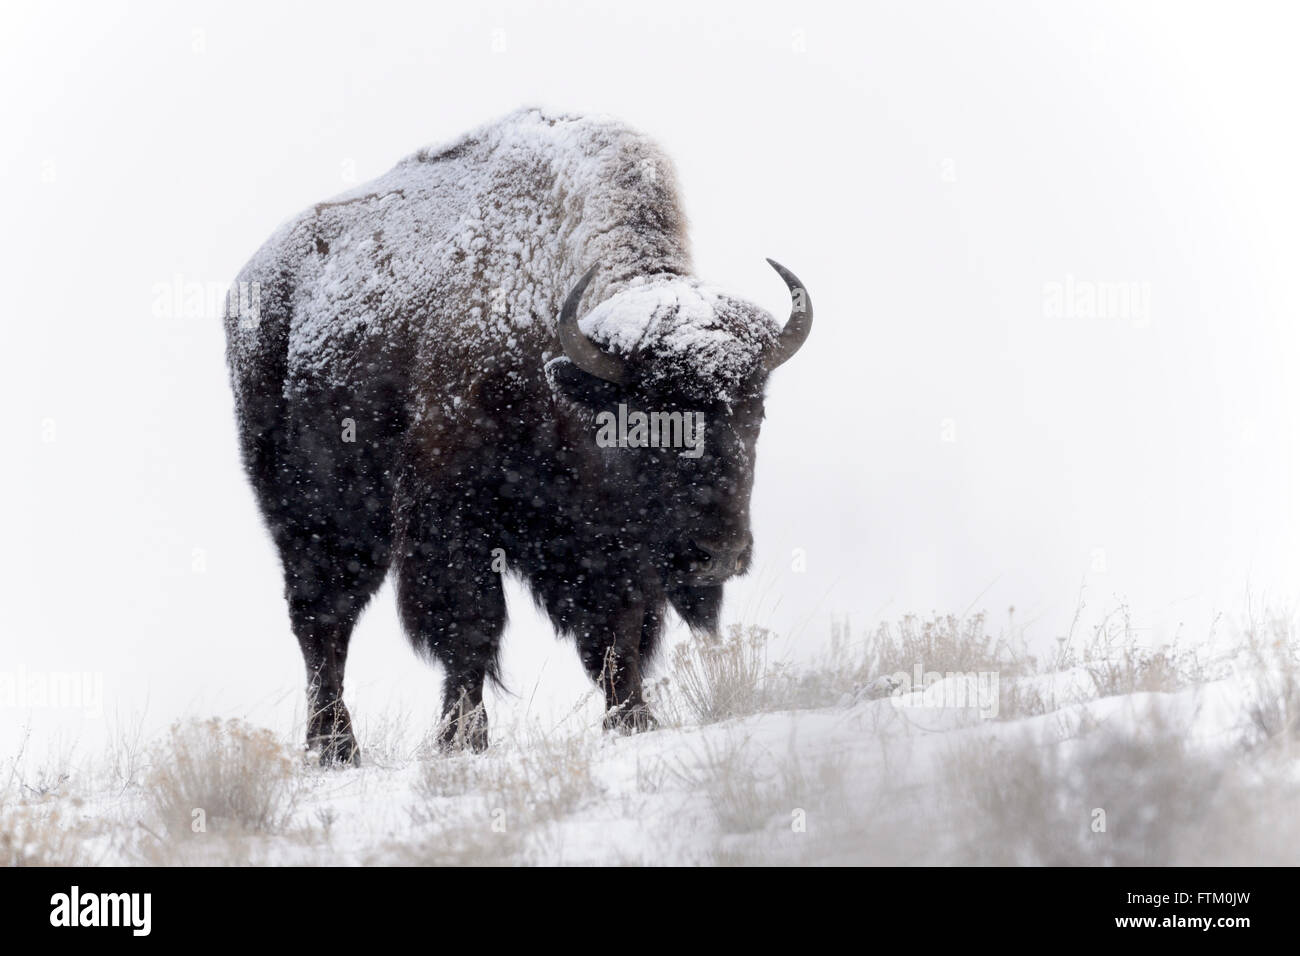 American Bison (Bison bison), standing in snow during blizzard, Lamar Valley, Yellowstone National Park, Wyoming, Stock Photo